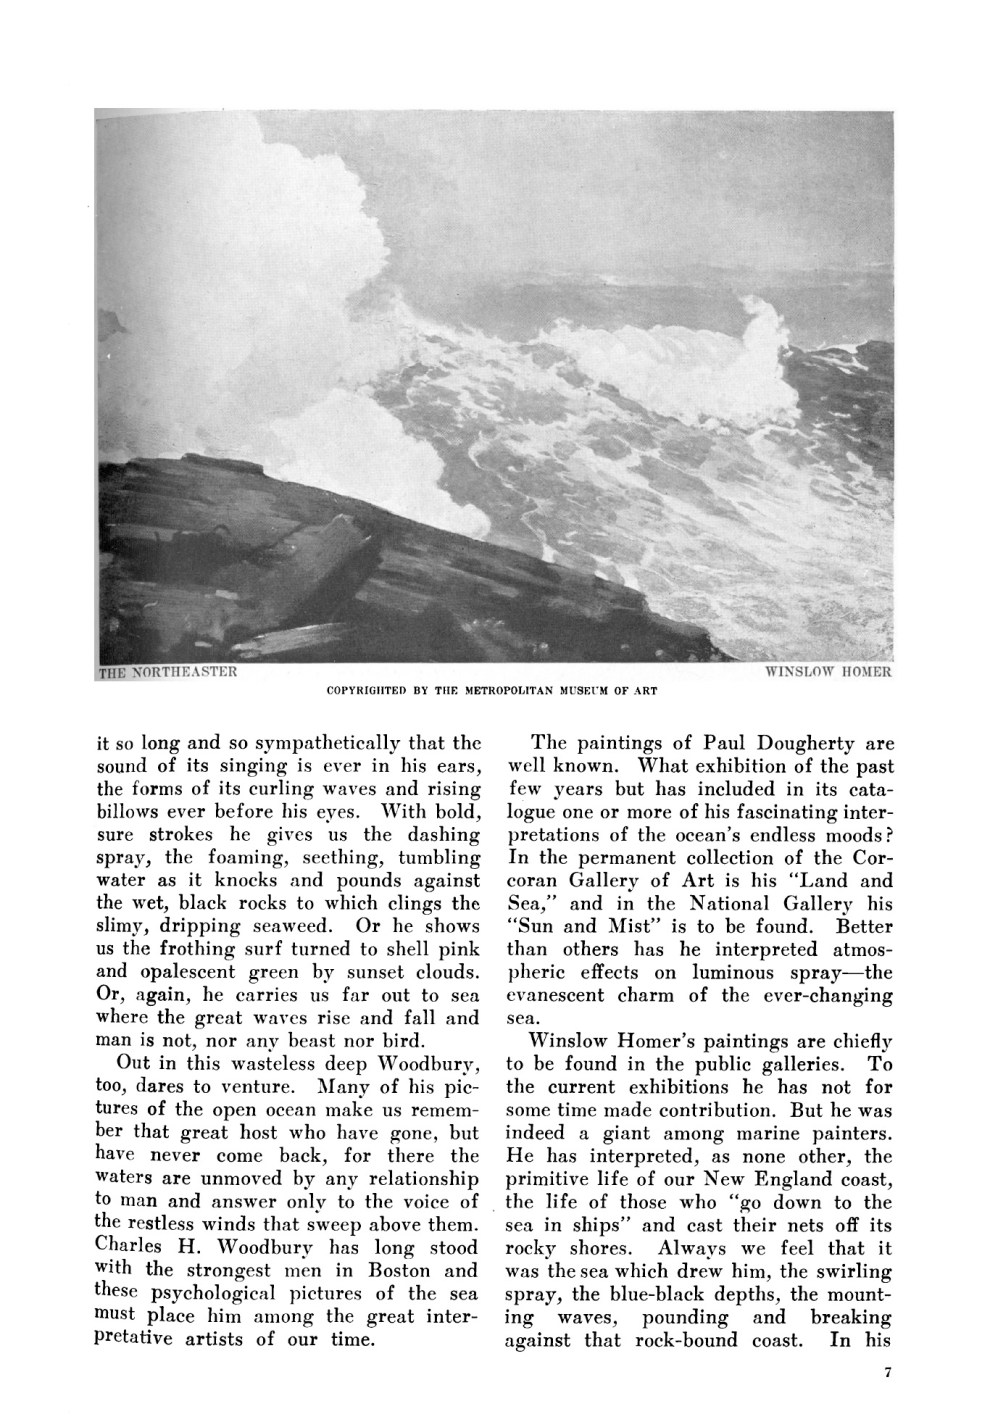 "Art and Progress, New York, NY, ""Some American Marine Painters"" by Anna Seaton-Schmidt, November, 1910, Volume 2, Number 1"